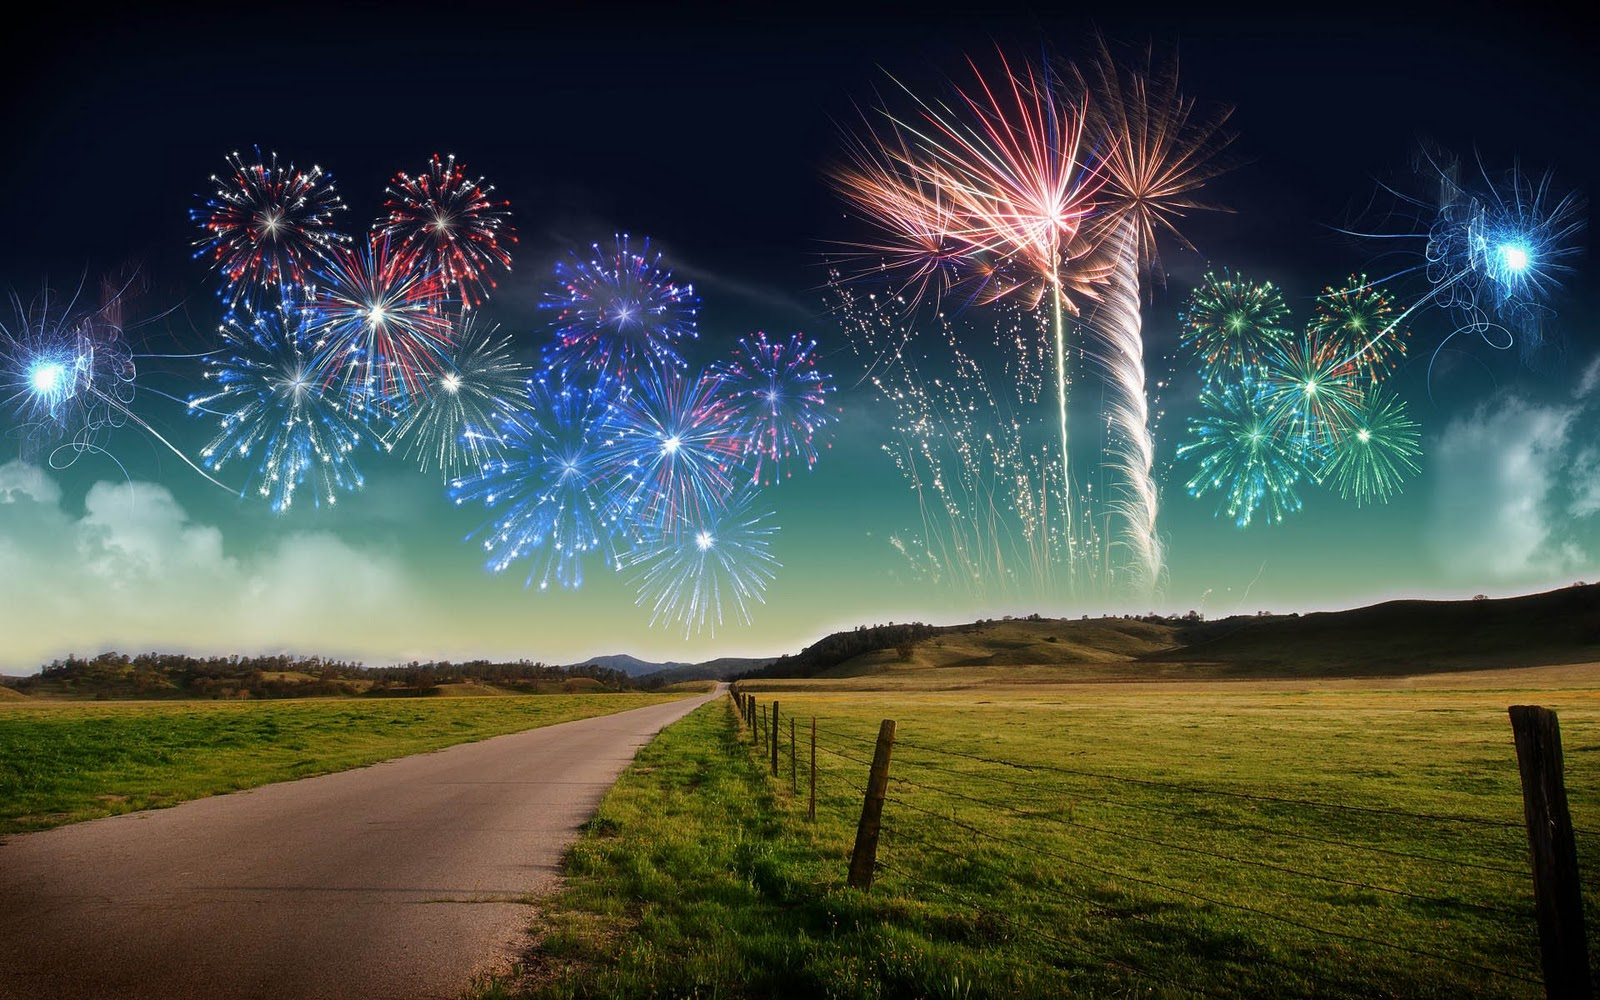 Best Desktop HD Wallpaper - Firework Wallpapers